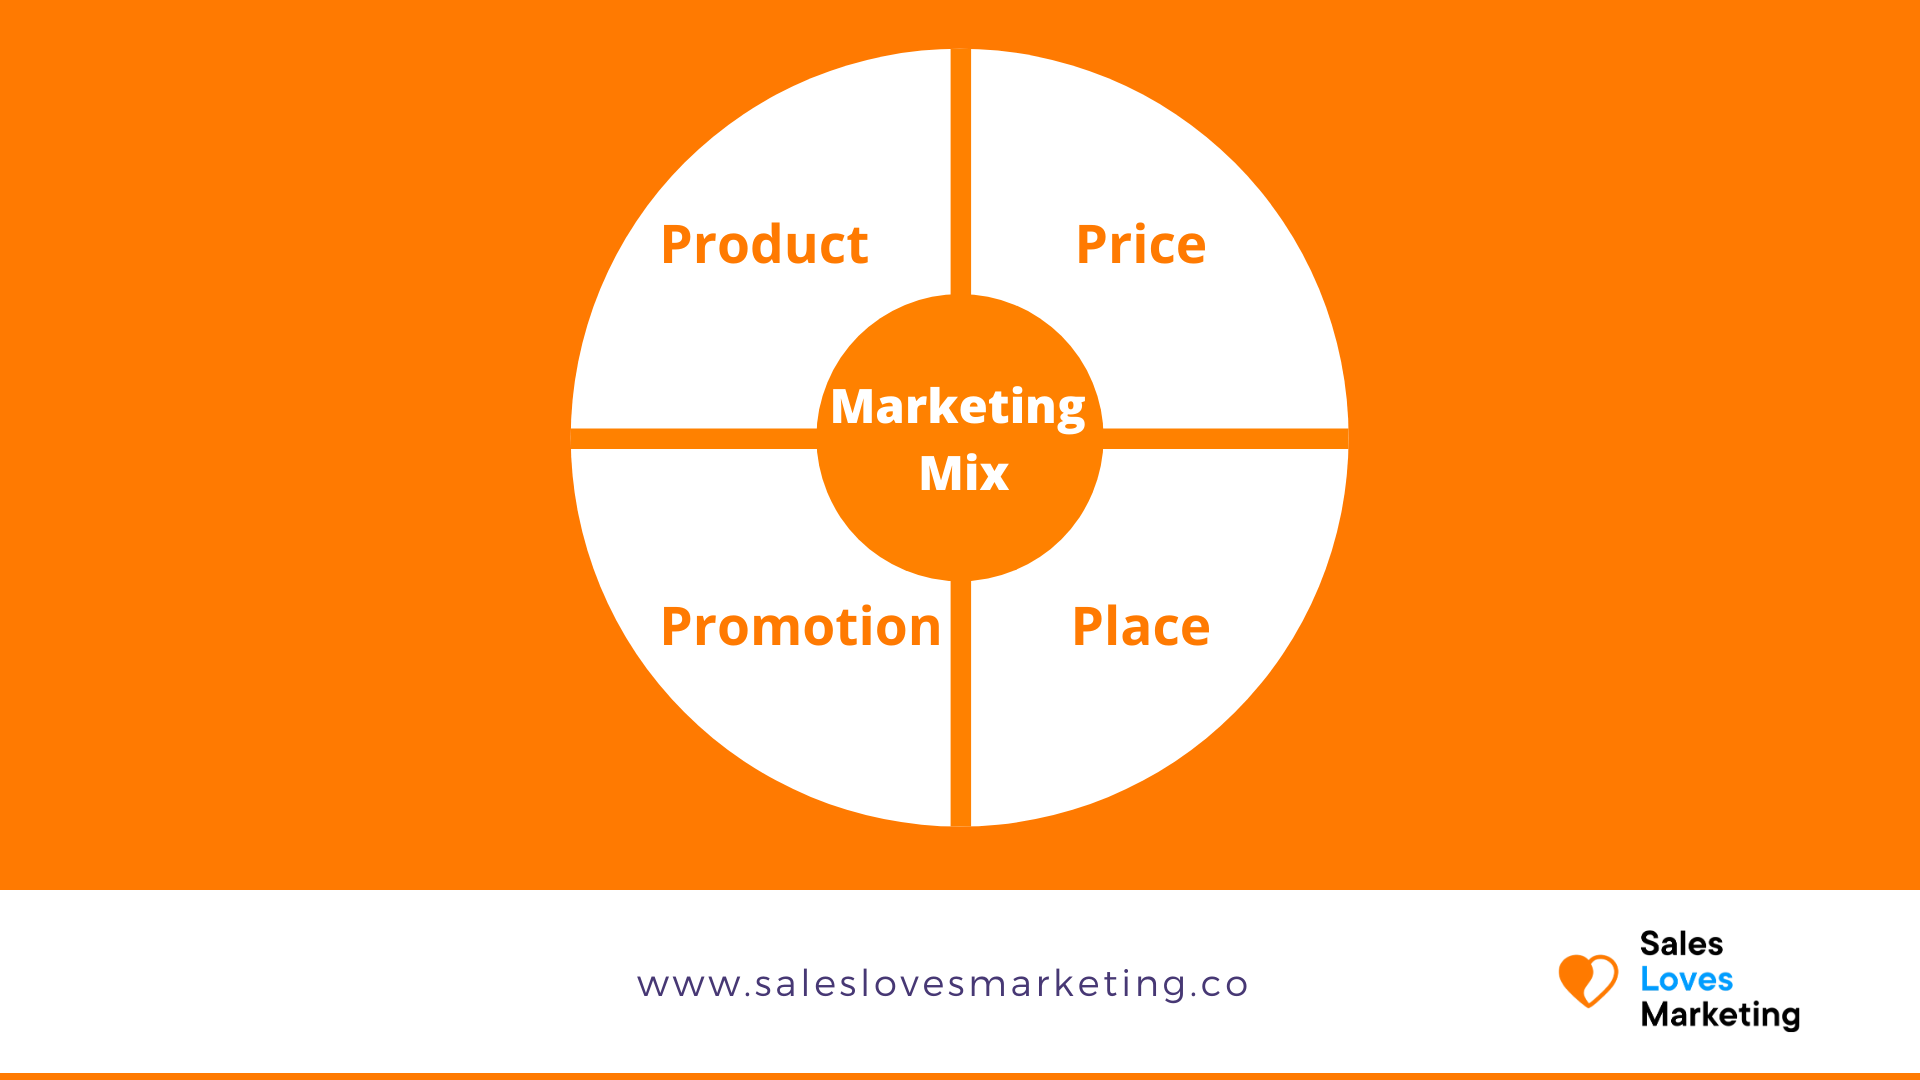 Marketing mix with four p's explained.